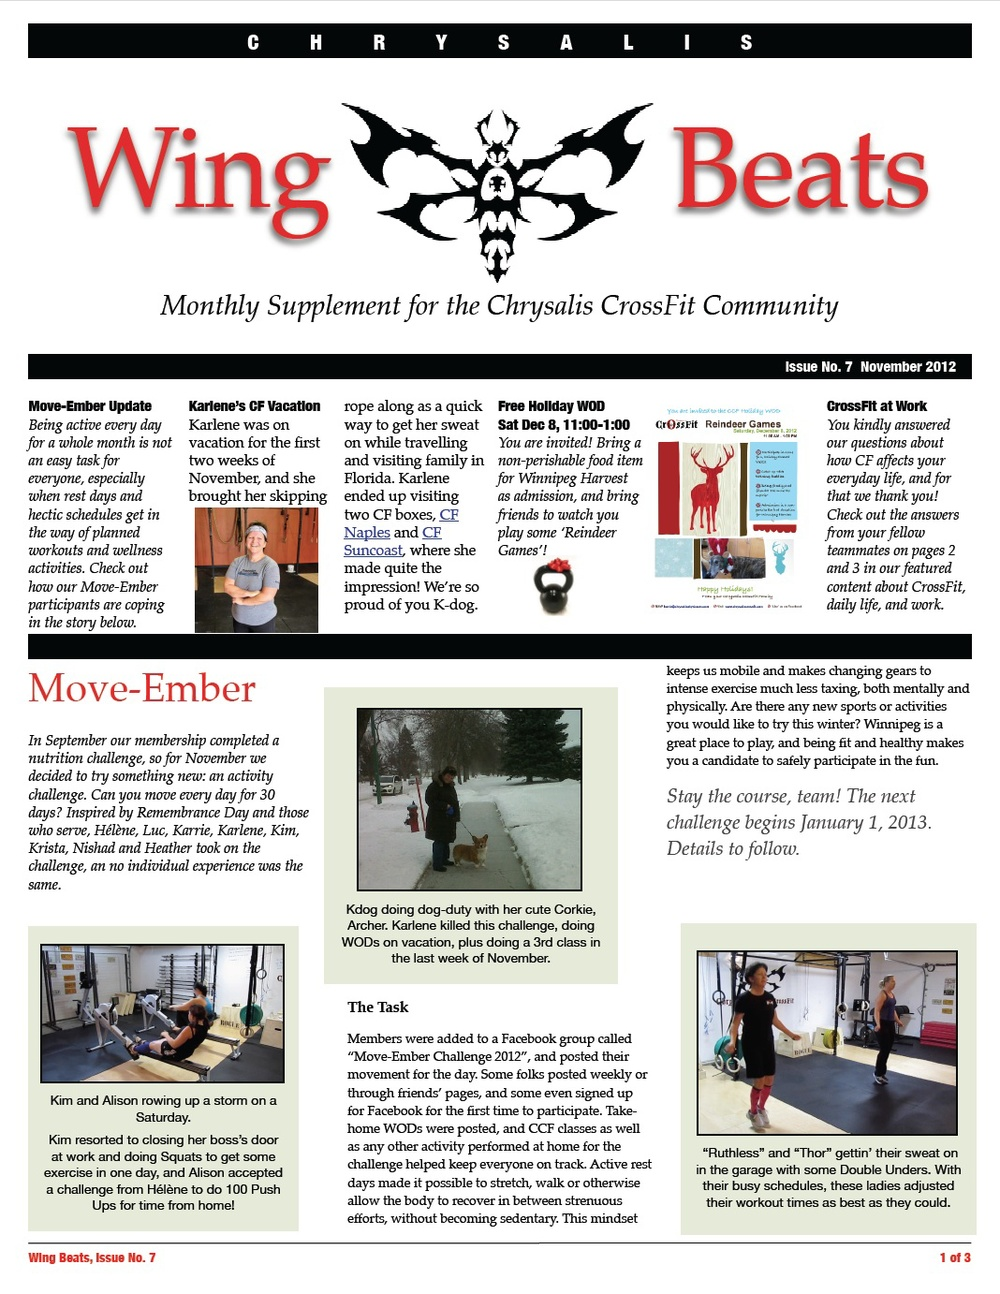 WingBeats Issue #7 - November 2012